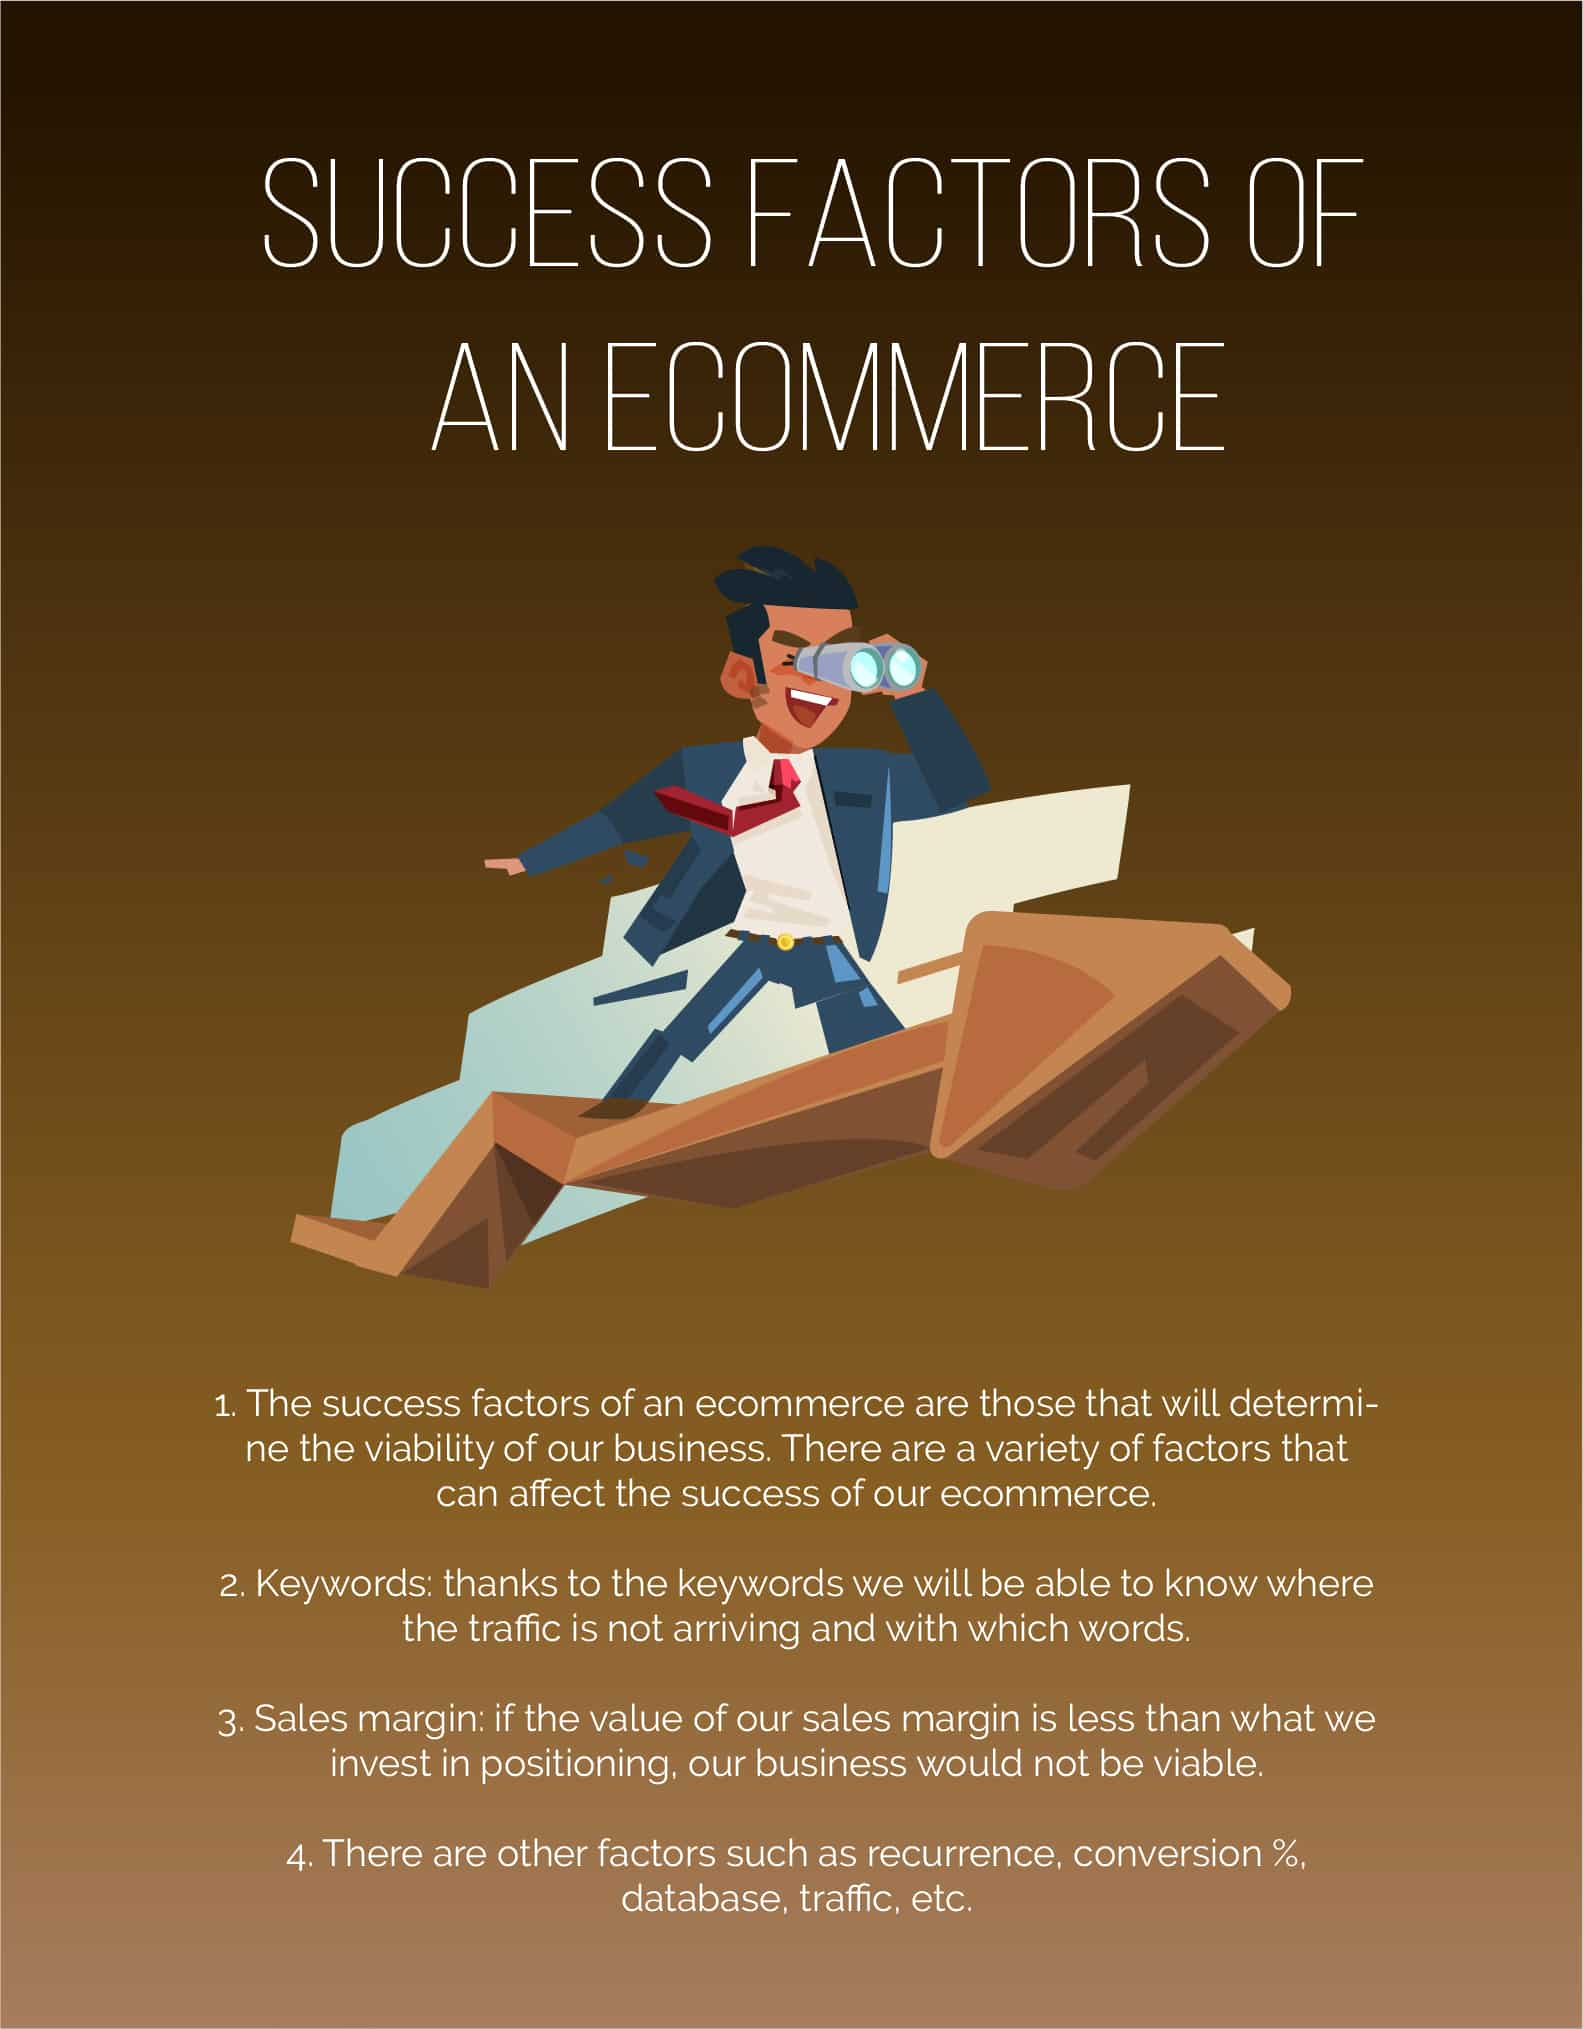 Success factors for ecommerce